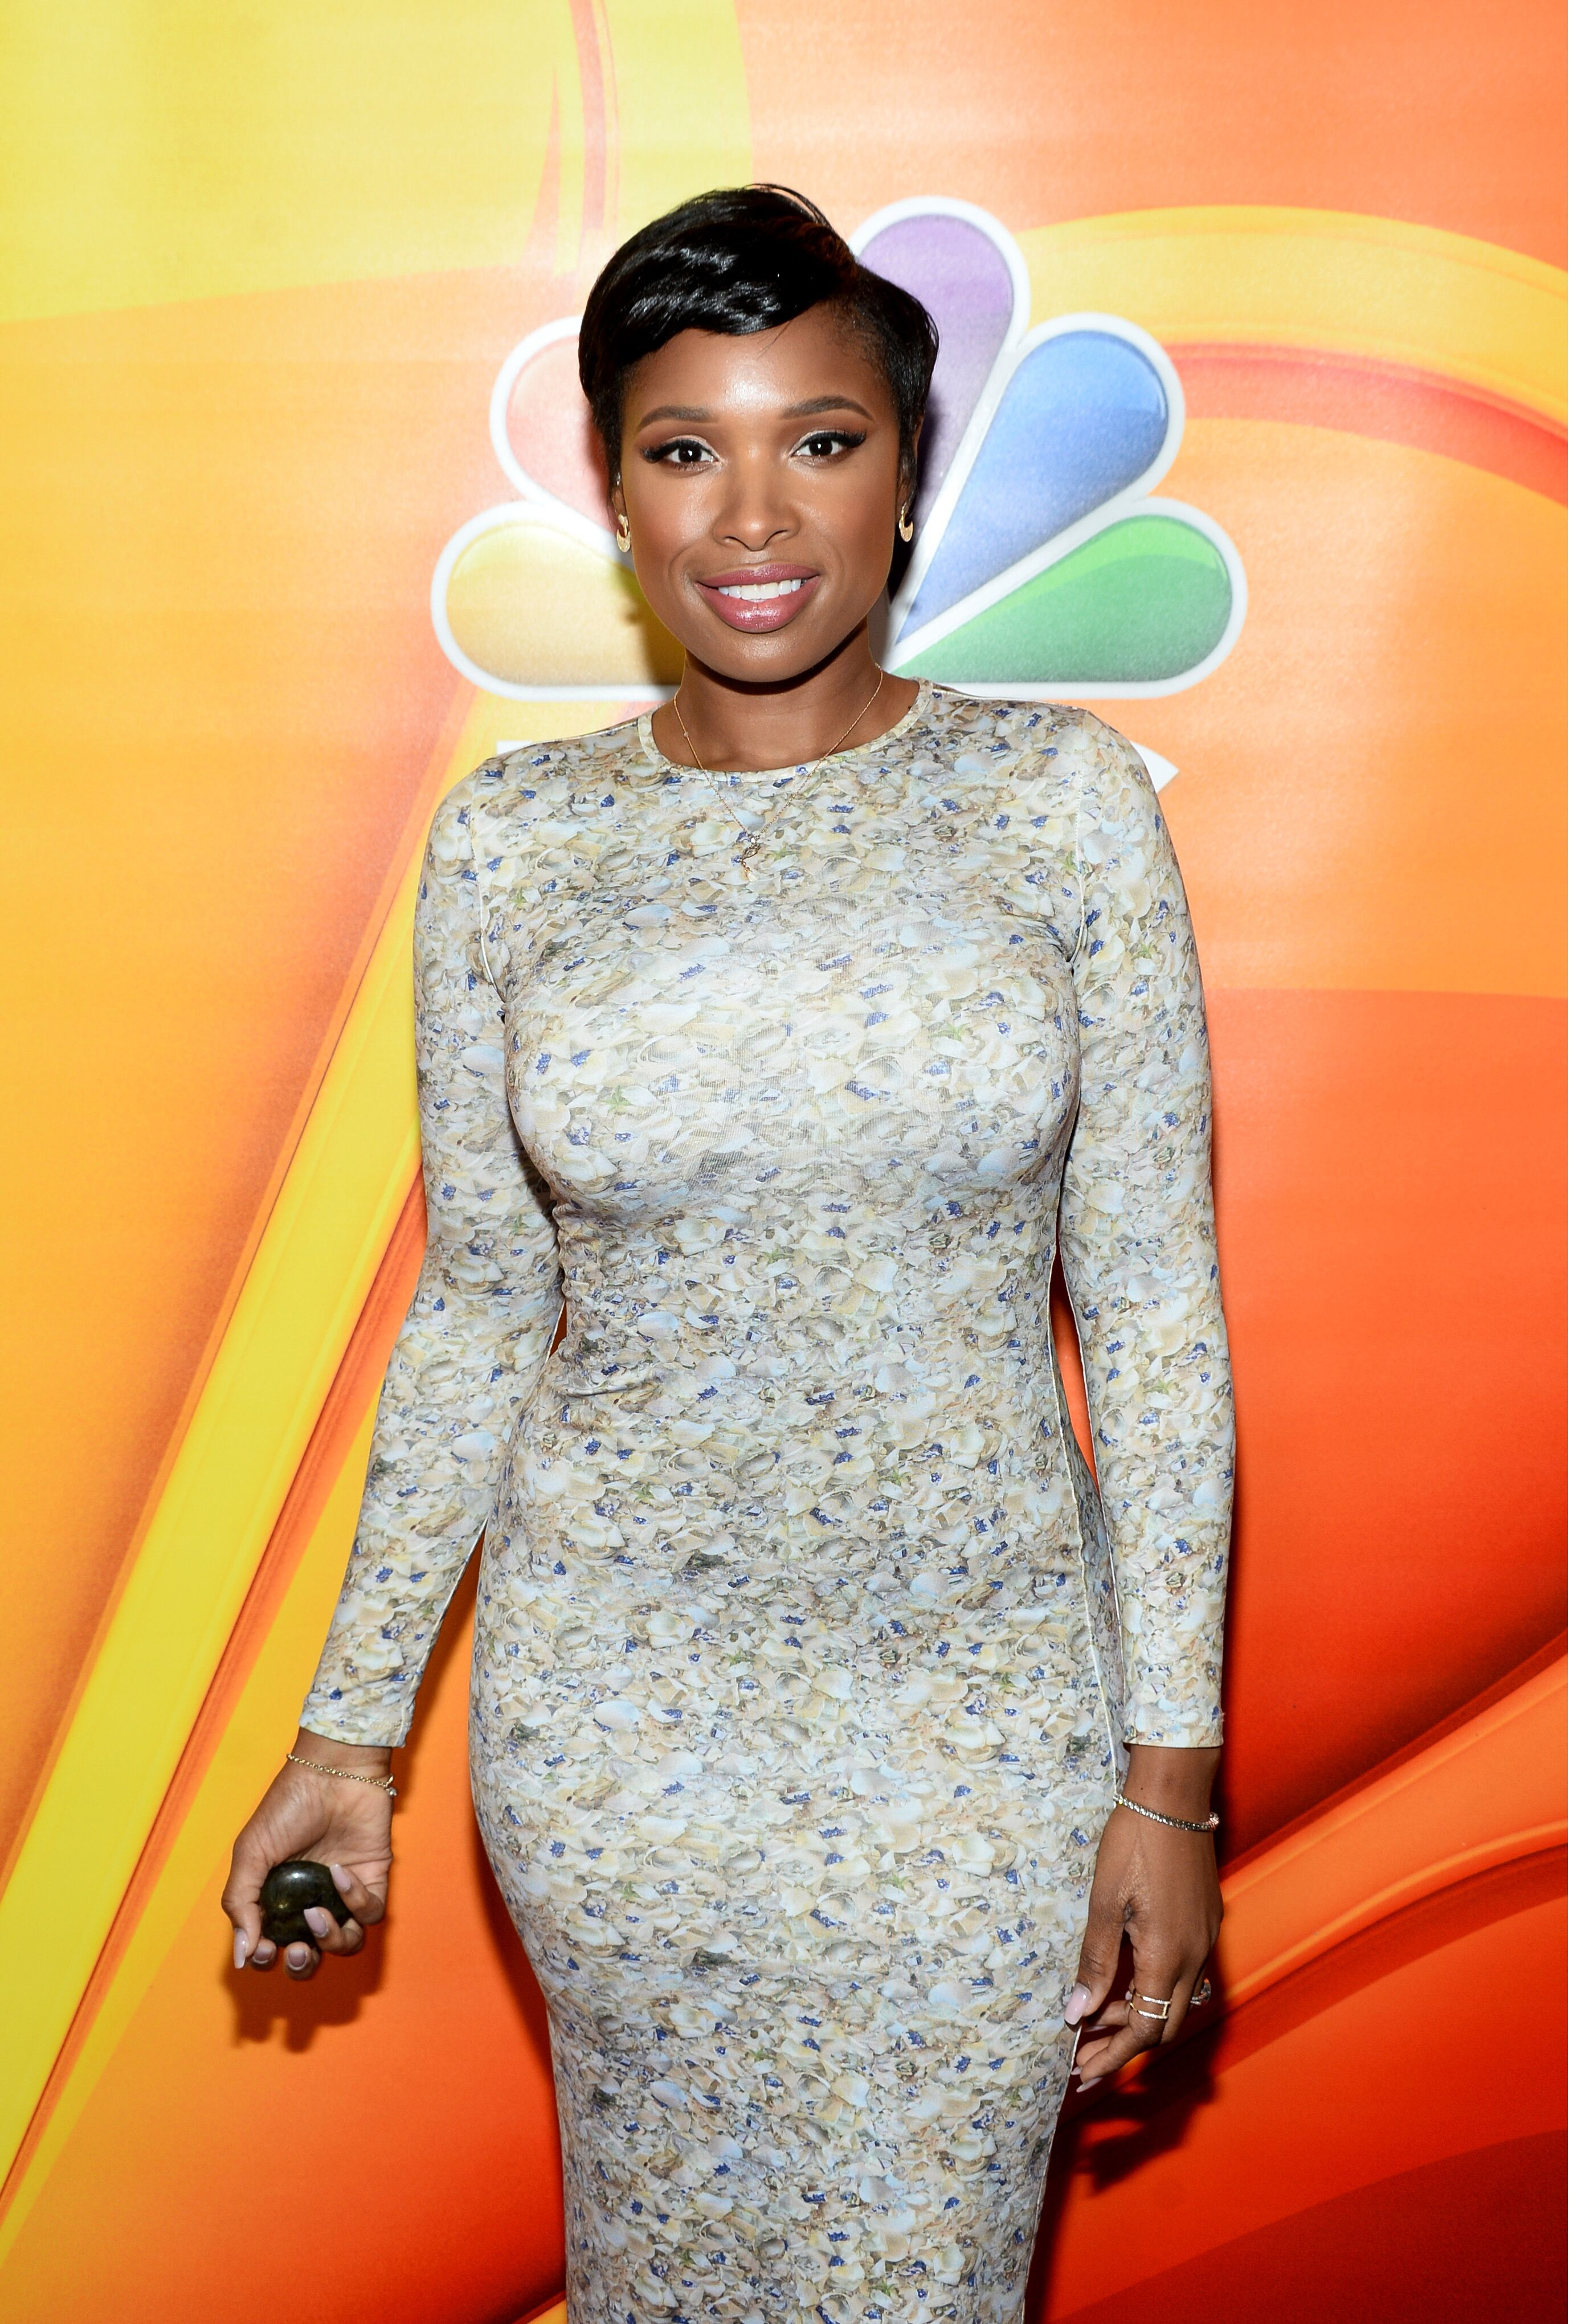 Jennifer Hudson attends the NBCUniversal press day during the 2016 Summer TCA Tour at The Beverly Hilton Hotel on August 2, 2016 in Beverly Hills, California. | Source: Getty Images